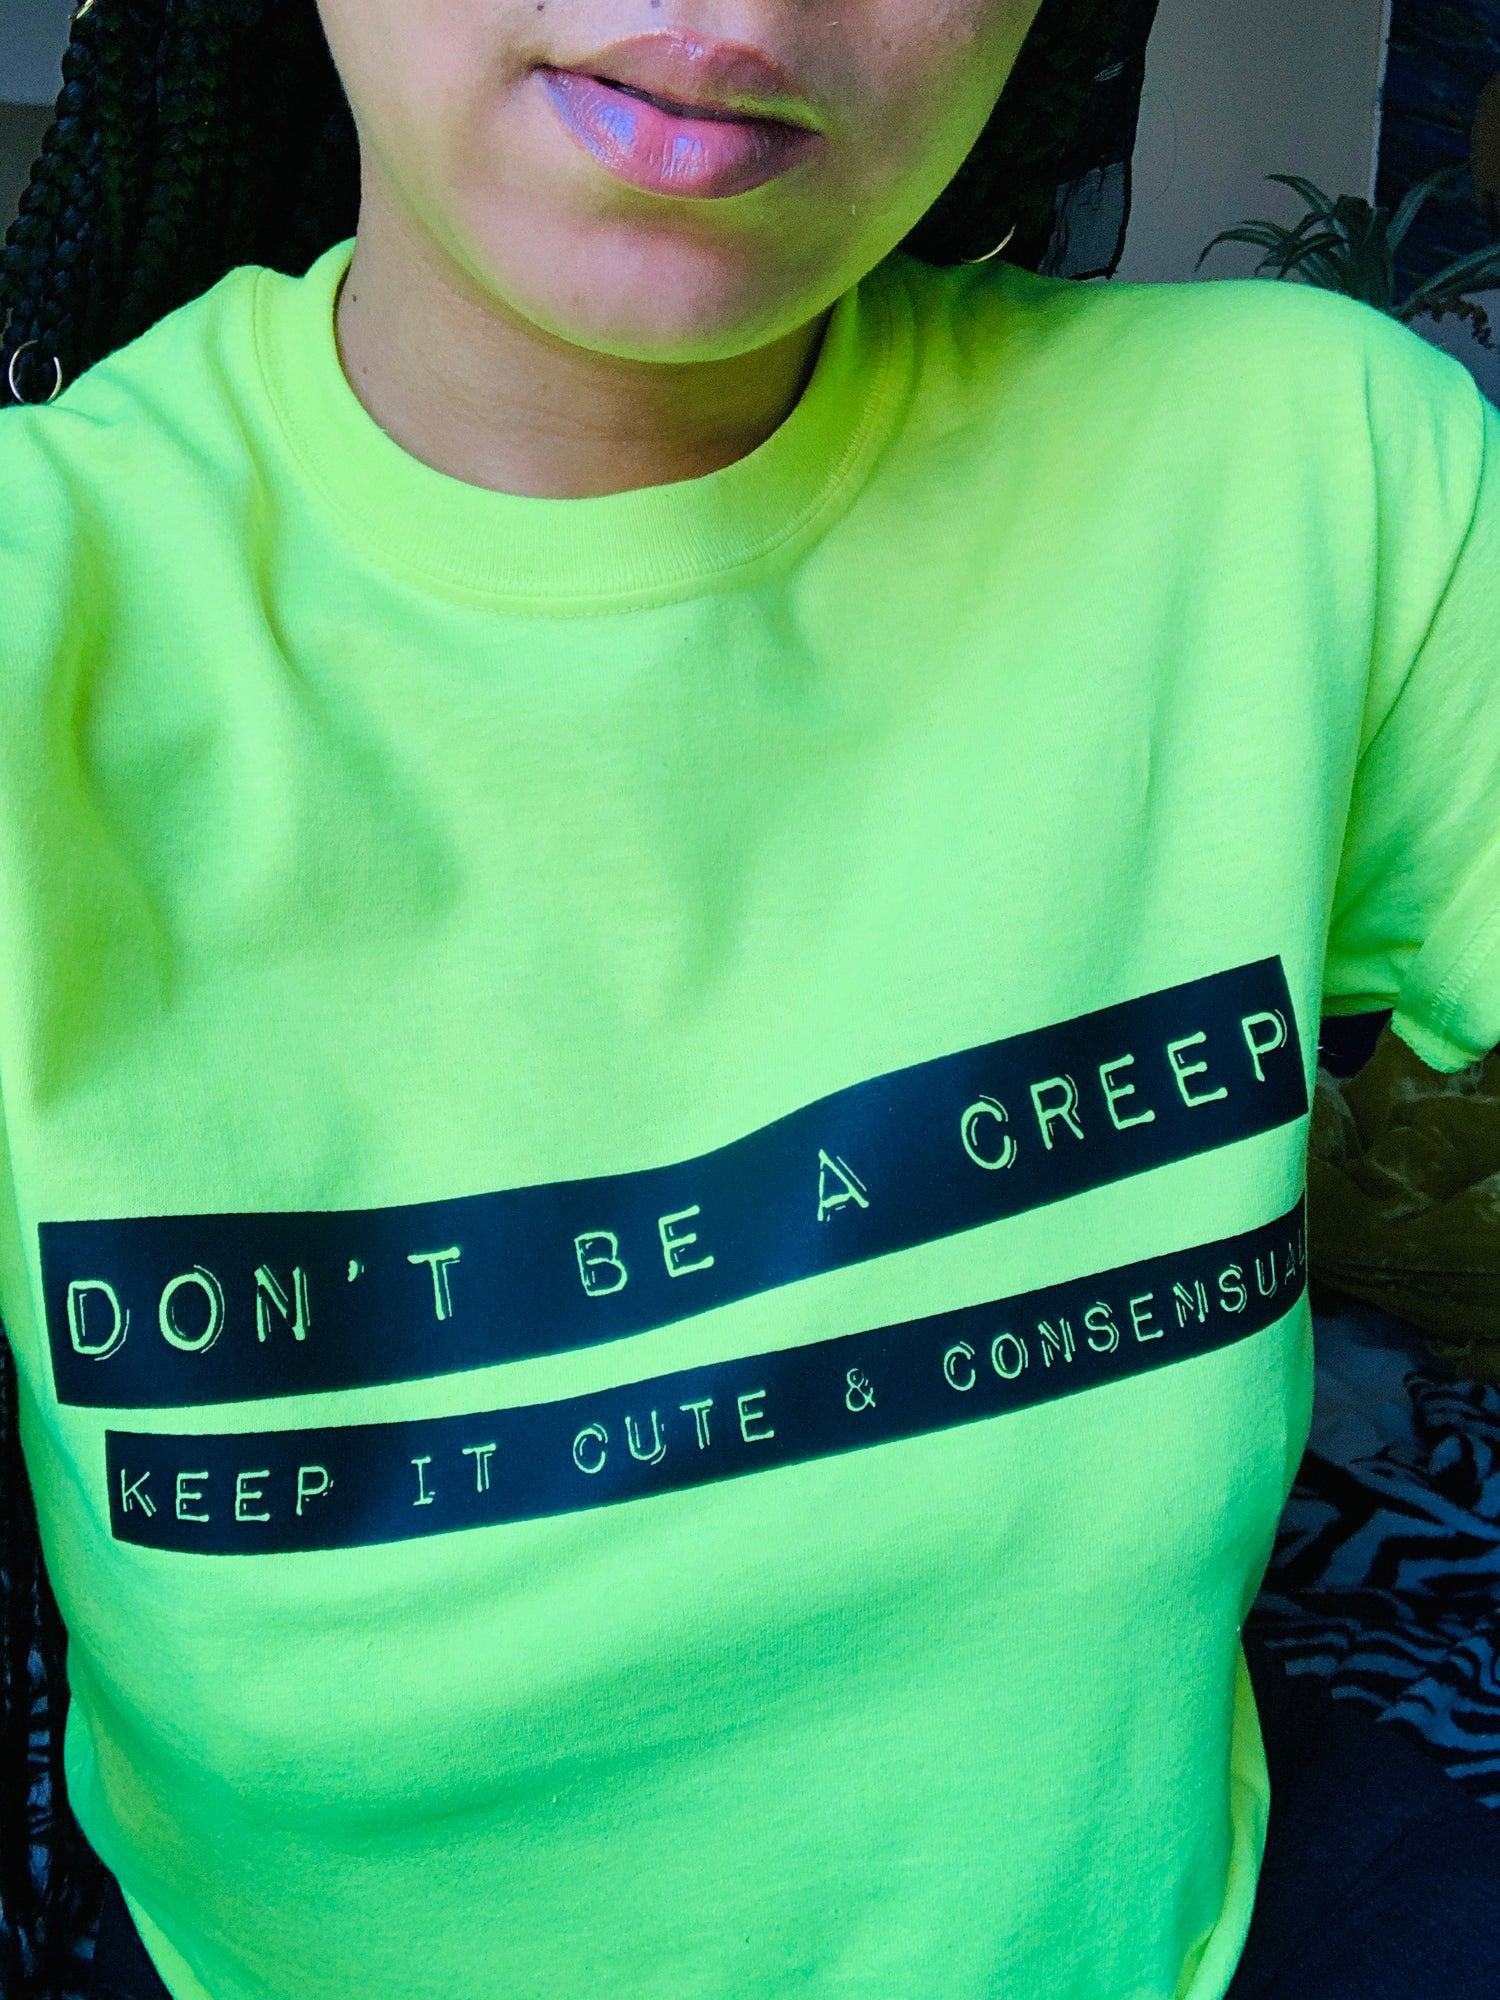 Image of Cute & Consensual tee in NEON